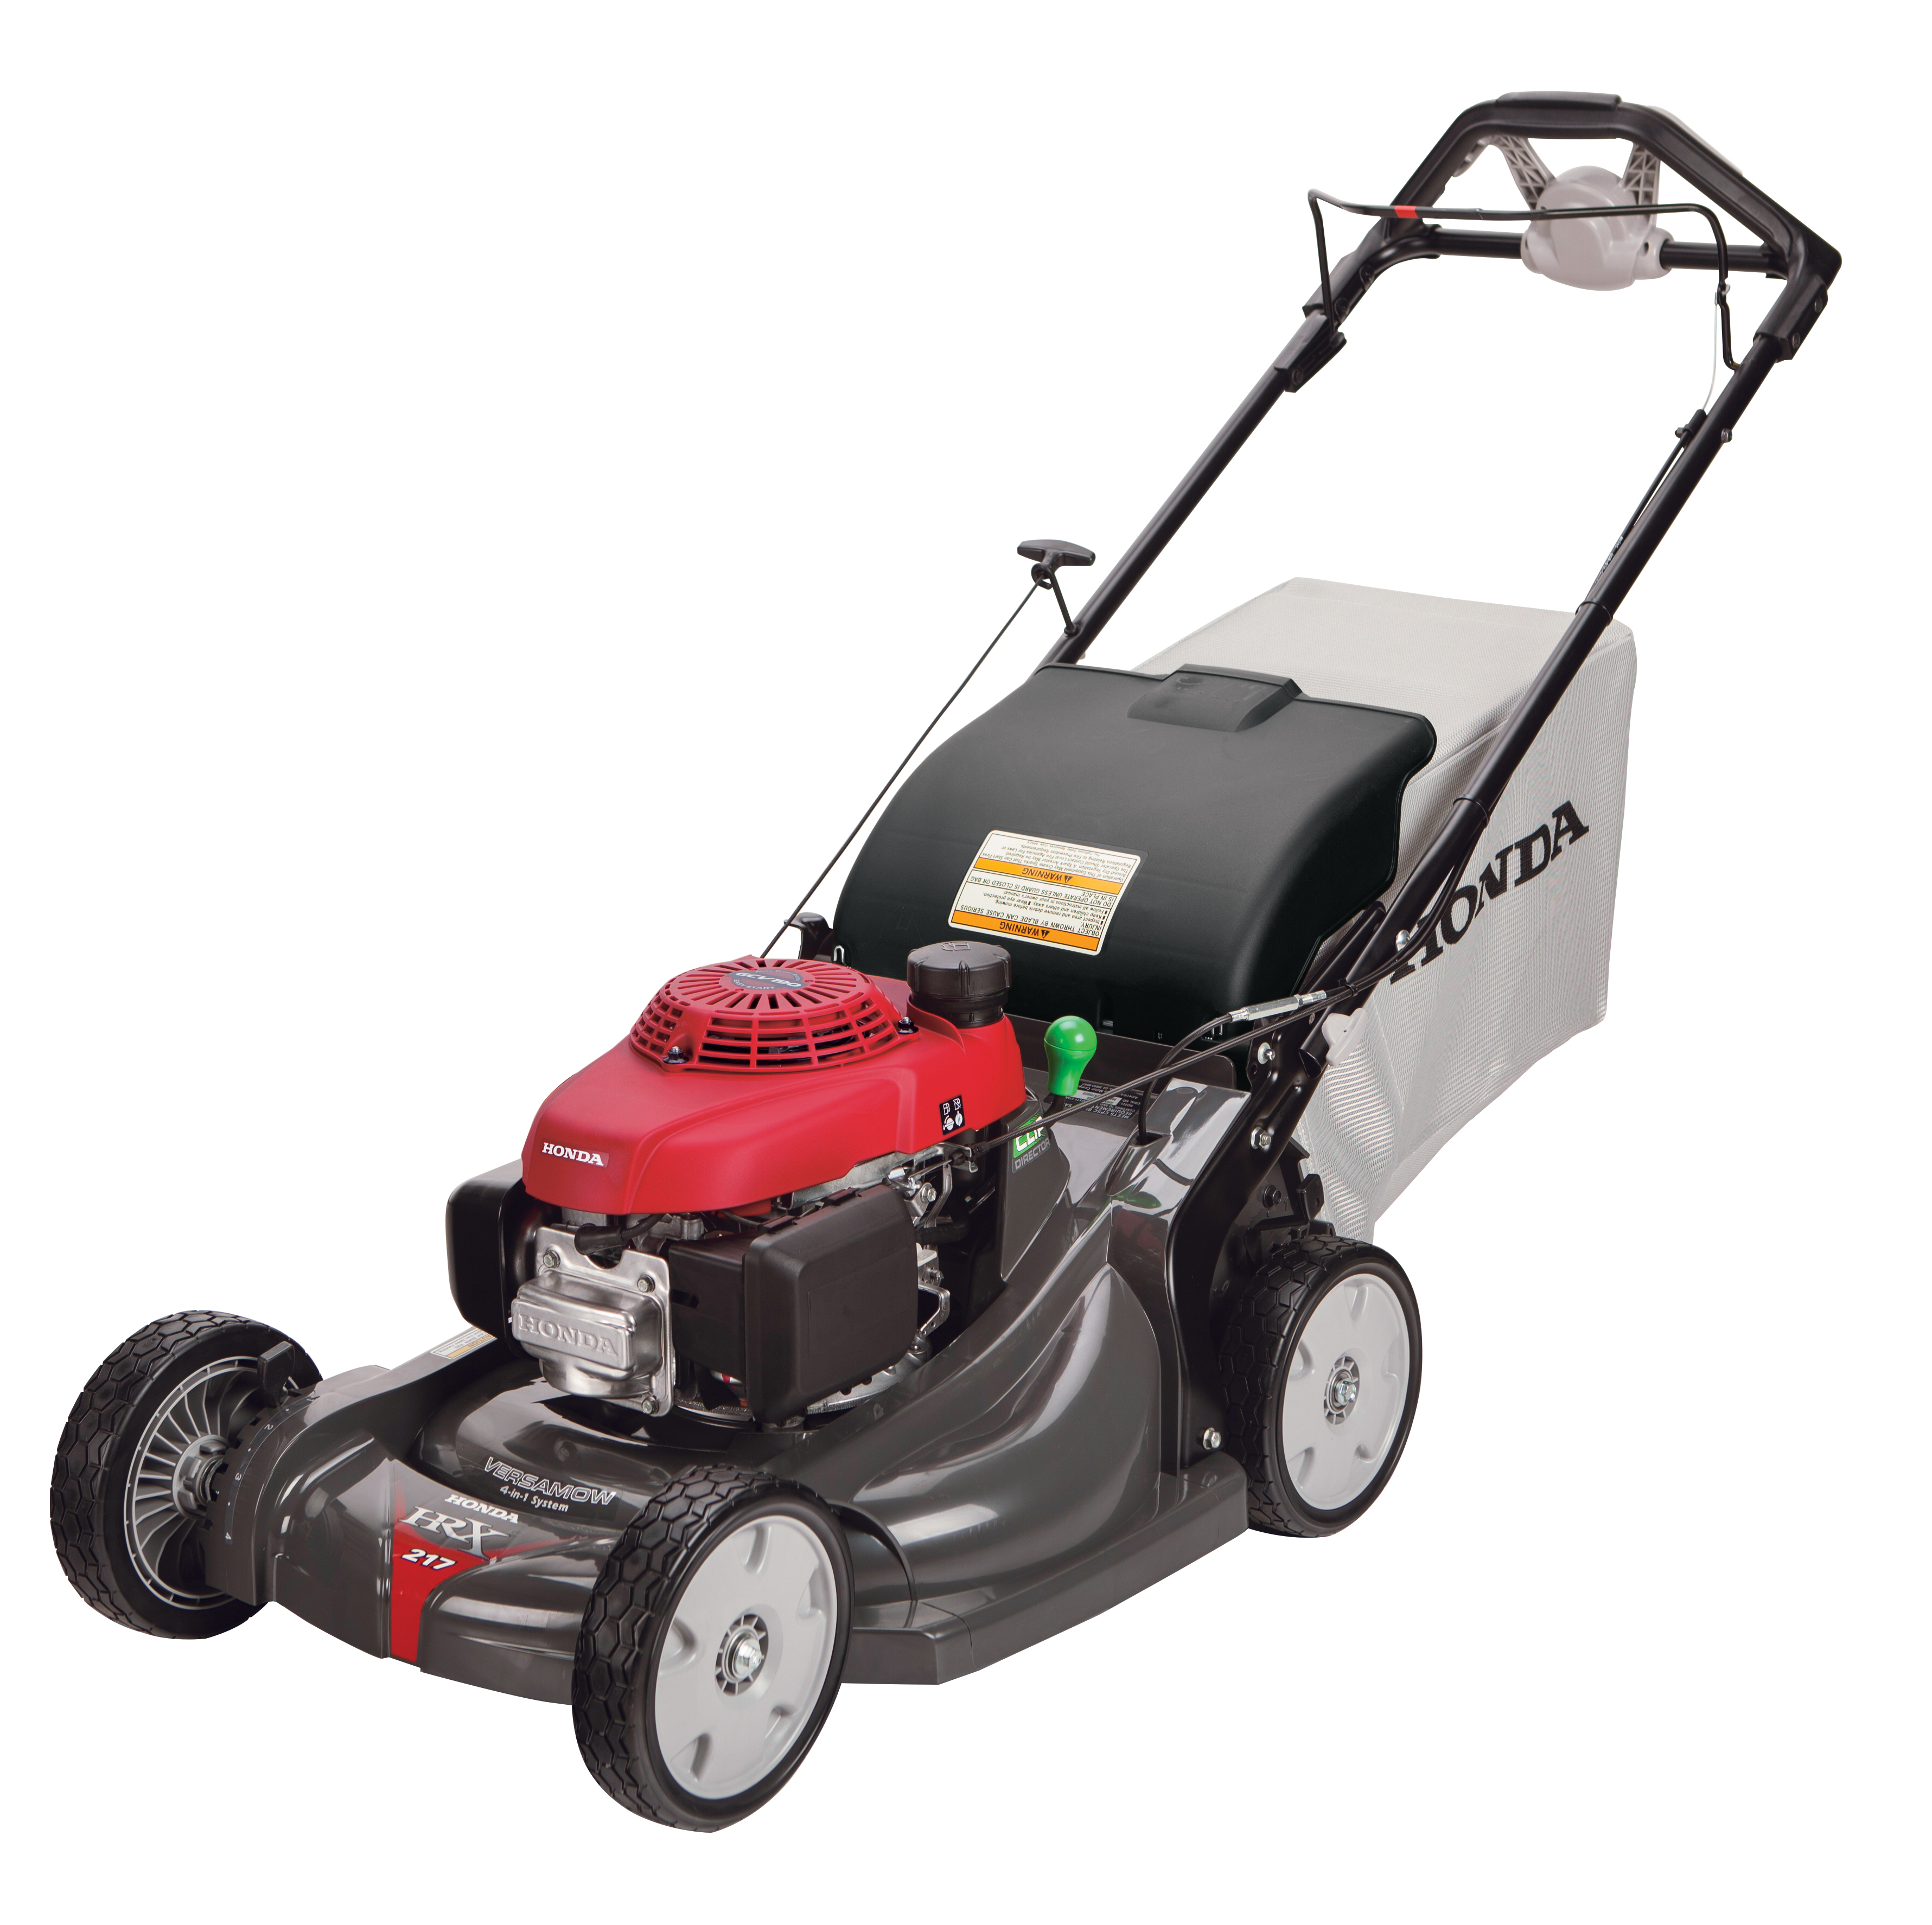 All New For 2014, These HRX Models Incorporate The Honda Select Drive  System, Providing Control, Comfort And Convenience To Mowing Customers.